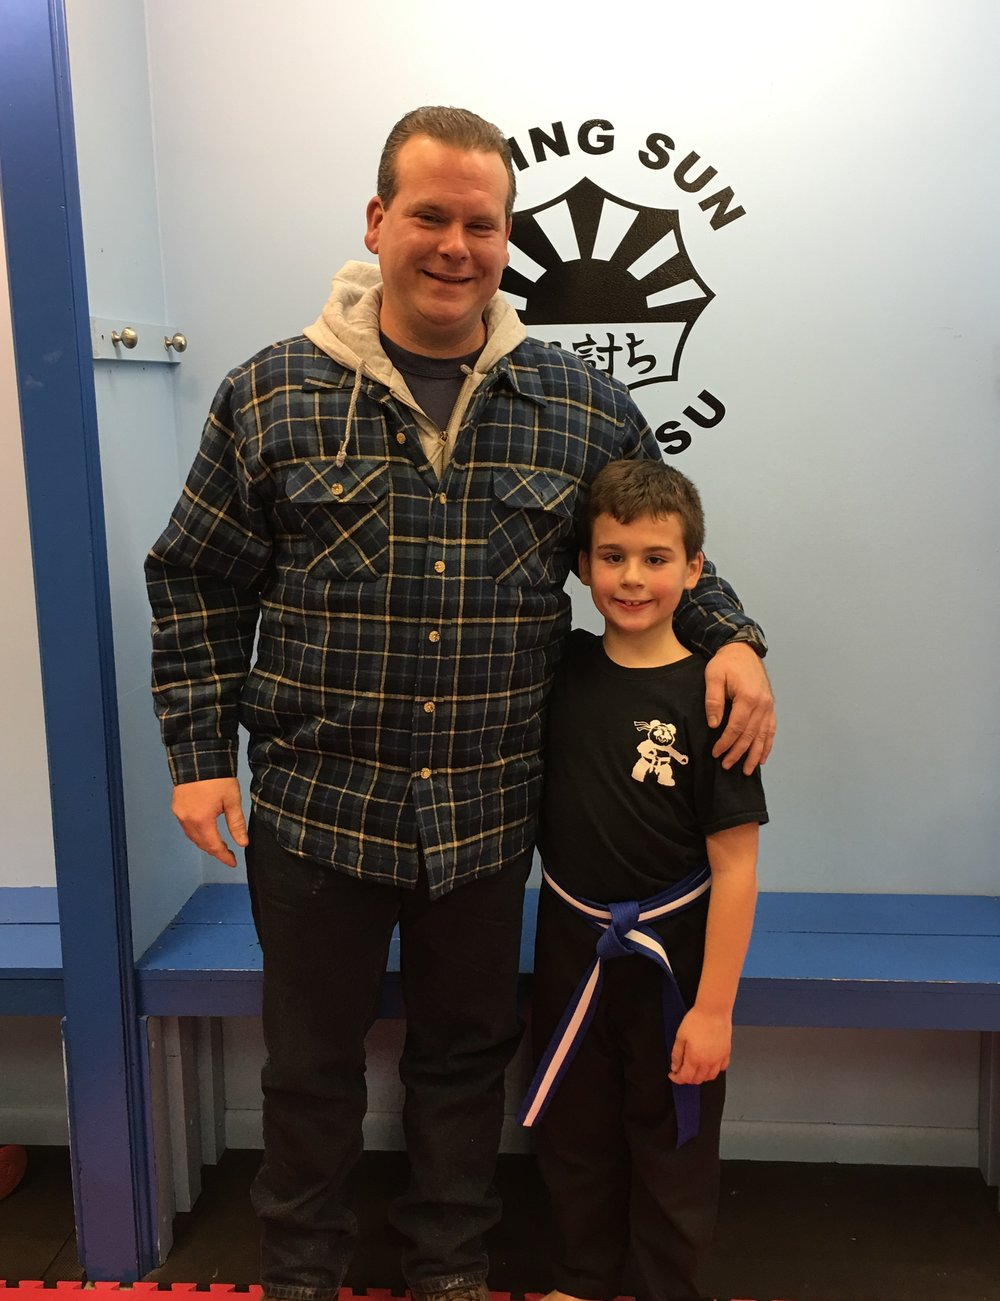 """Anthony and son AJ """"Rising Sun Jiu-jitsu has made a positive impact on my son. I have noticed several positive changes in his behavior. He is more assertive and confident both at home and at school. My son is confident in his ability to defend himself from bullying. Sensei Watts does an incredible job with his students instilling self- confidence and building character."""" - Anthony Haywood"""